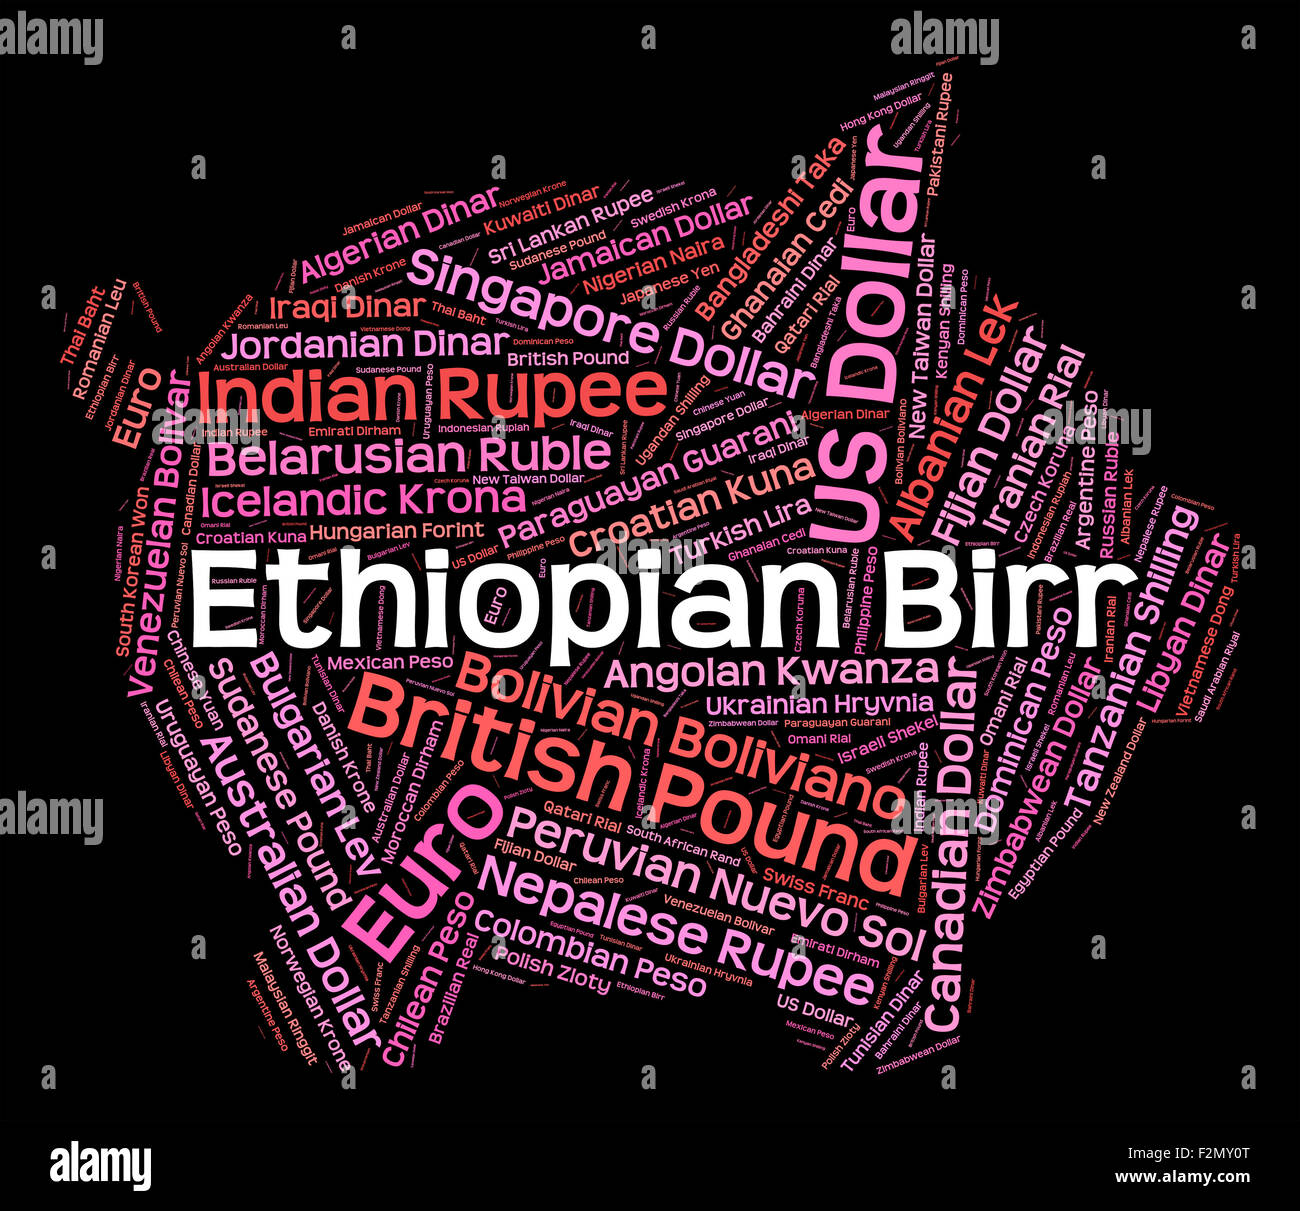 Ethiopian Birr Meaning Forex Trading And Etb Stock Photo